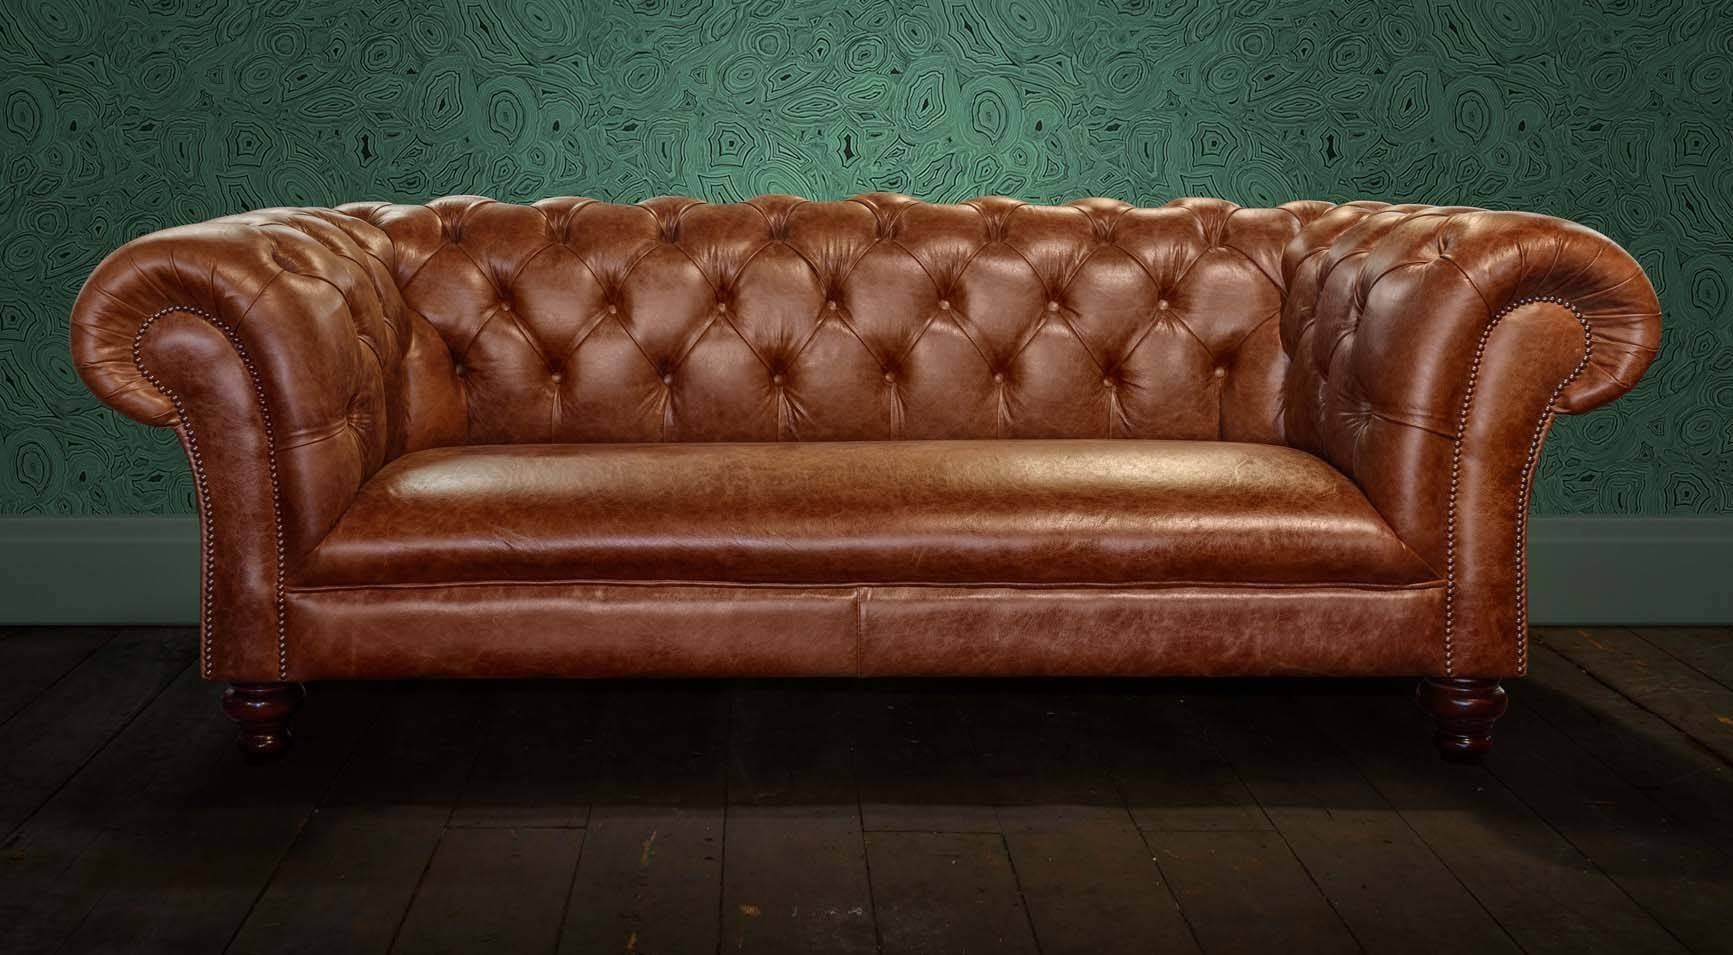 Second Hand Sofas Uk - Leather Sectional Sofa intended for Small Chesterfield Sofas (Image 14 of 30)